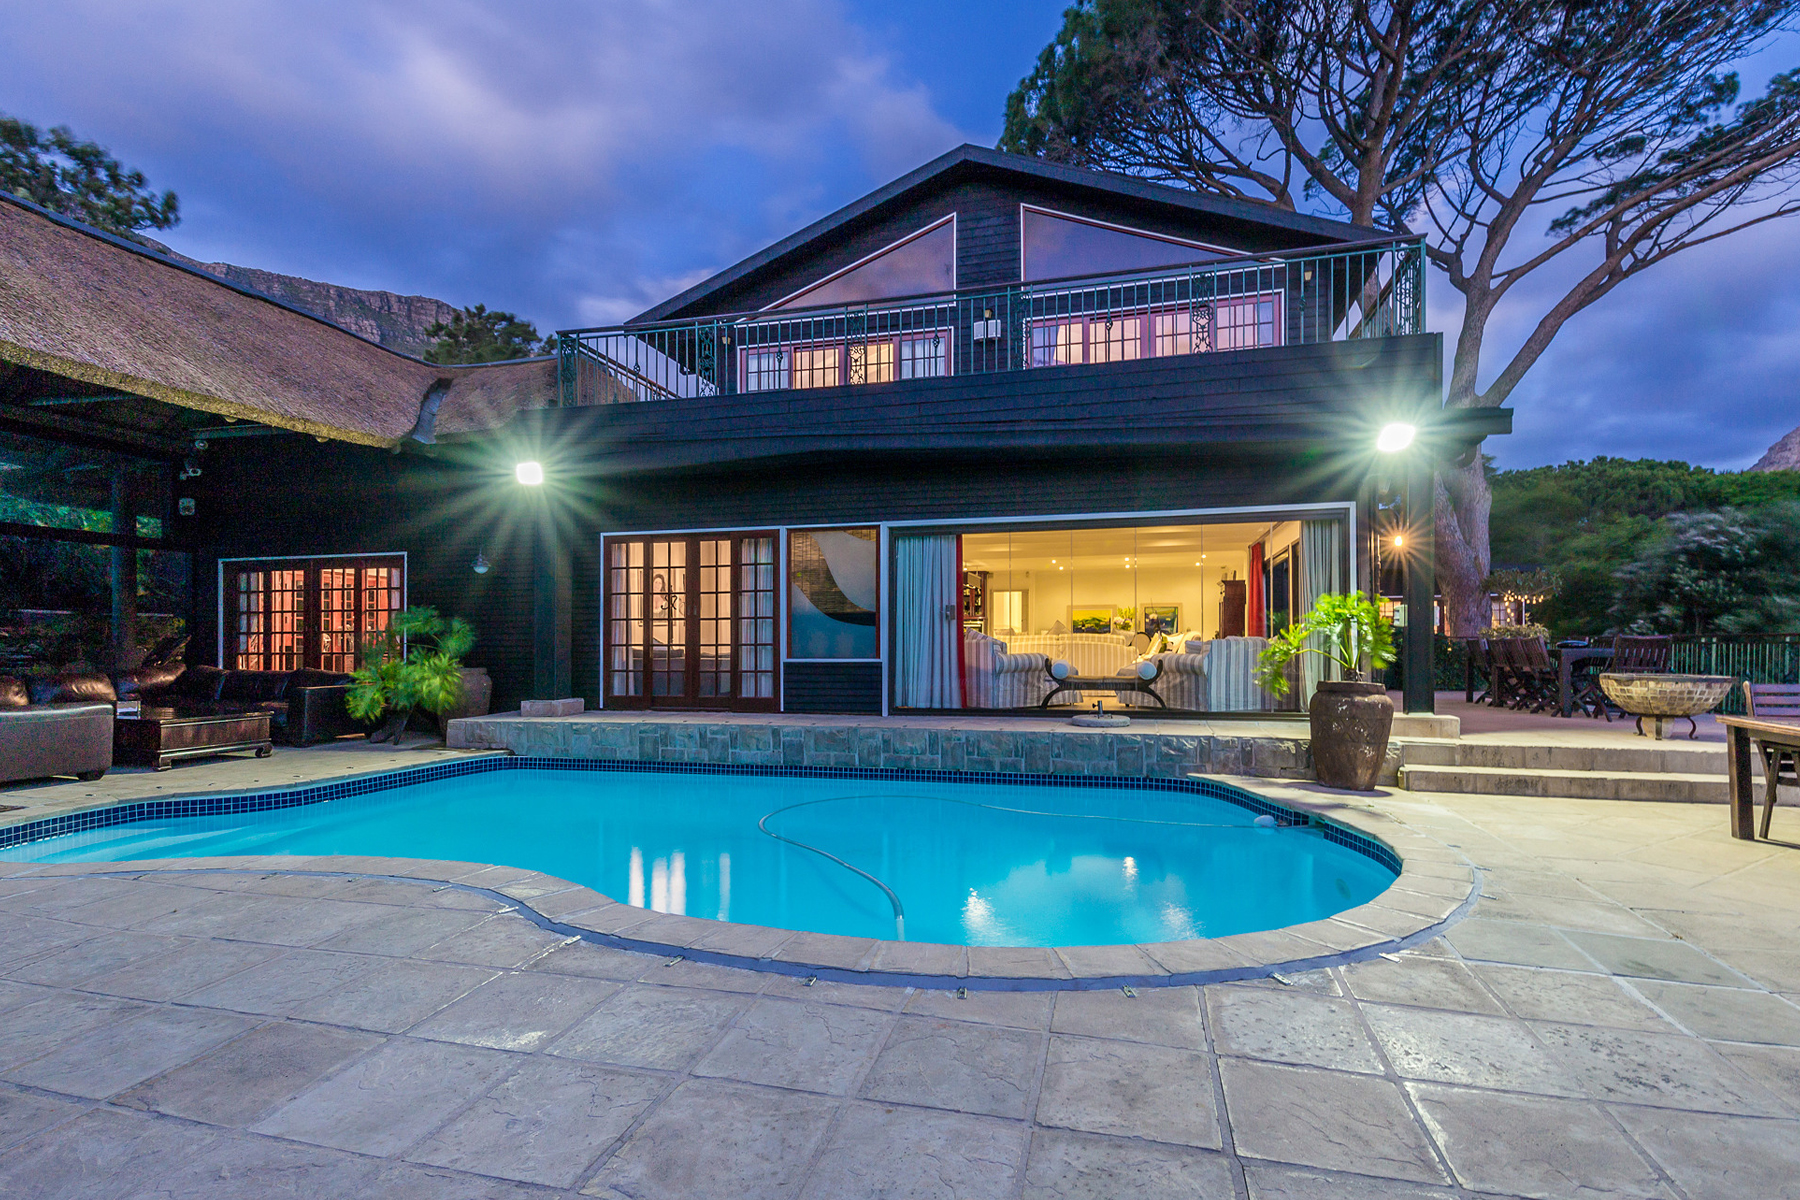 Single Family Home for Sale at Hout Bay Cape Town, Western Cape, South Africa